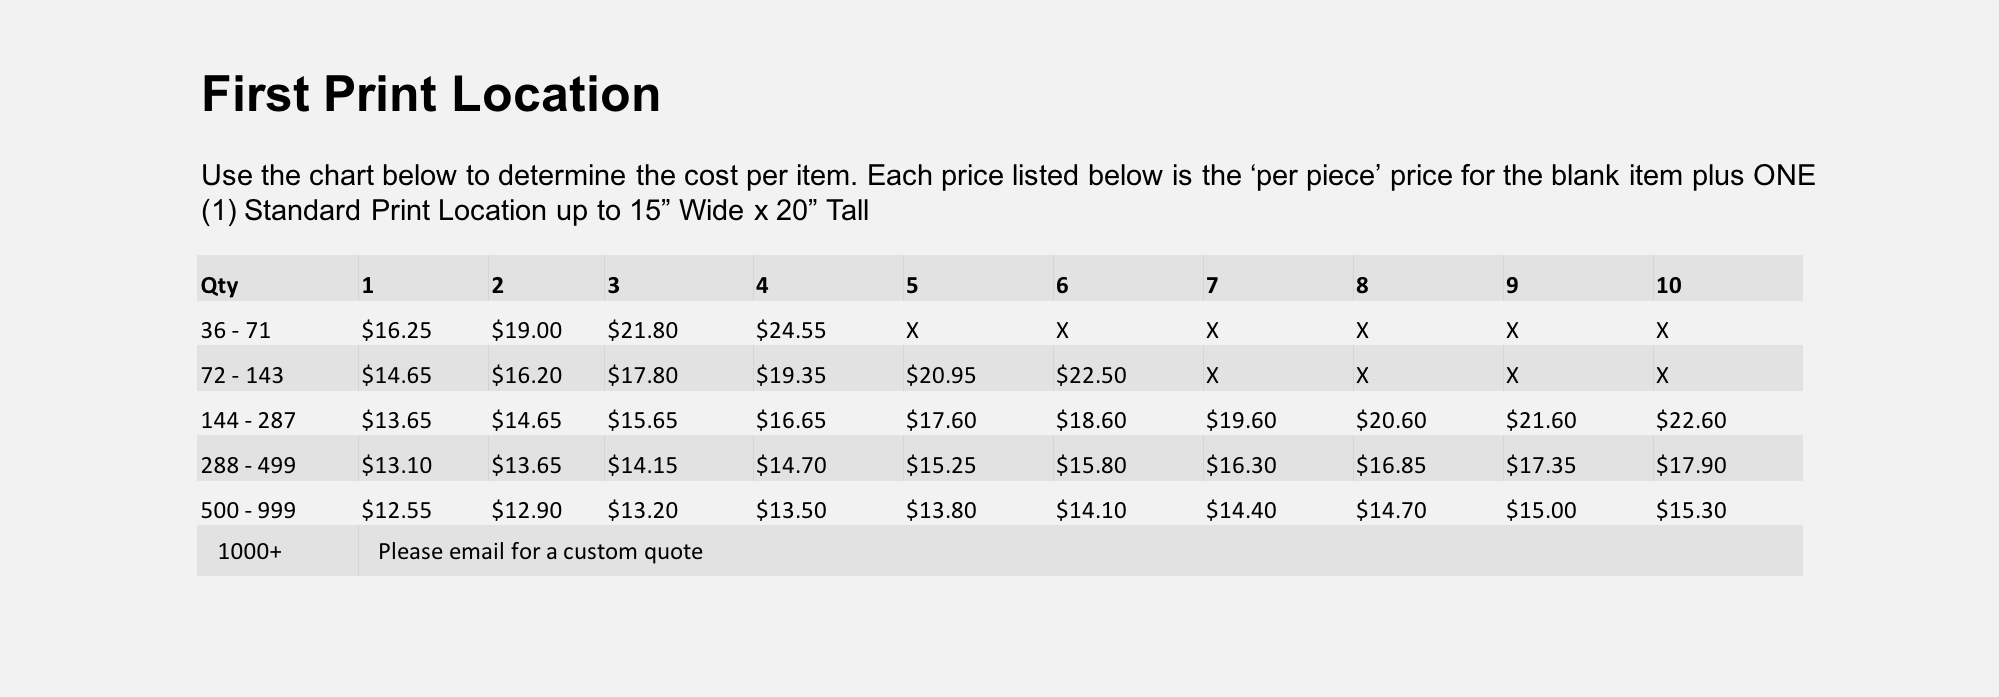 04135C1_Pricing.png